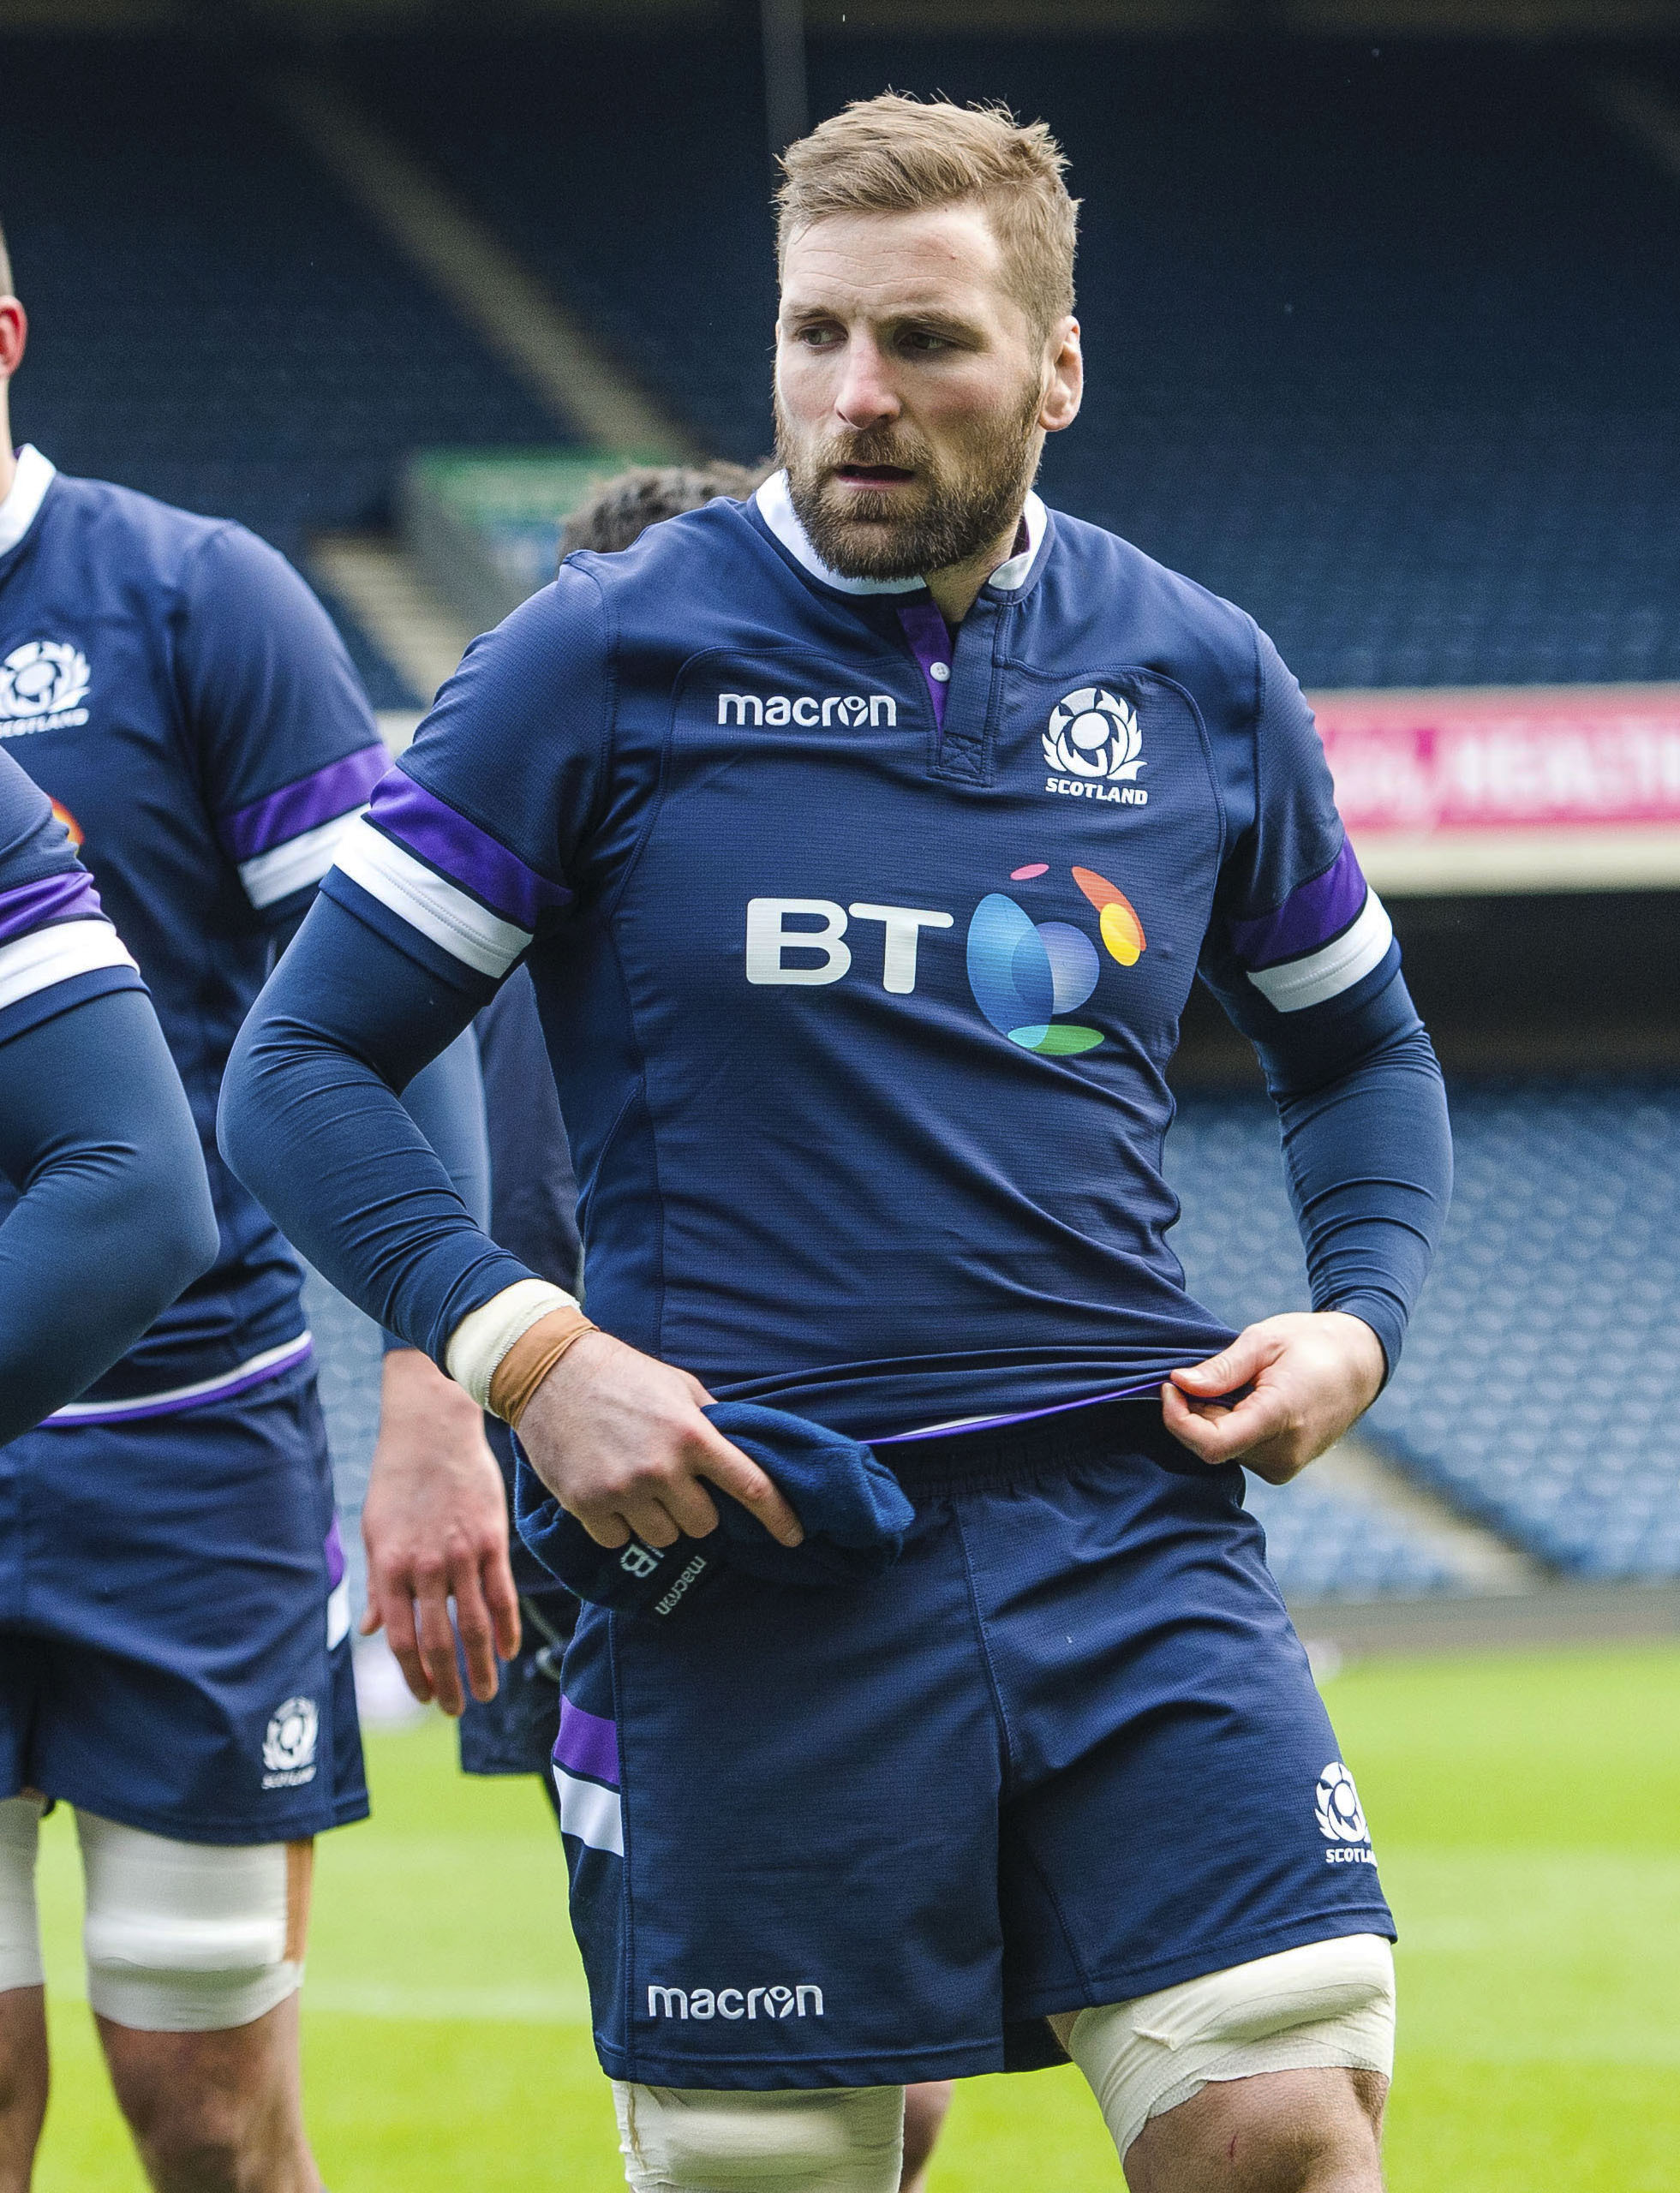 24/11/17. SCOTLAND CAPTAIN'S RUN. BT MURRAYFIELD - EDINBURGH. Scotland captain John Barclay..